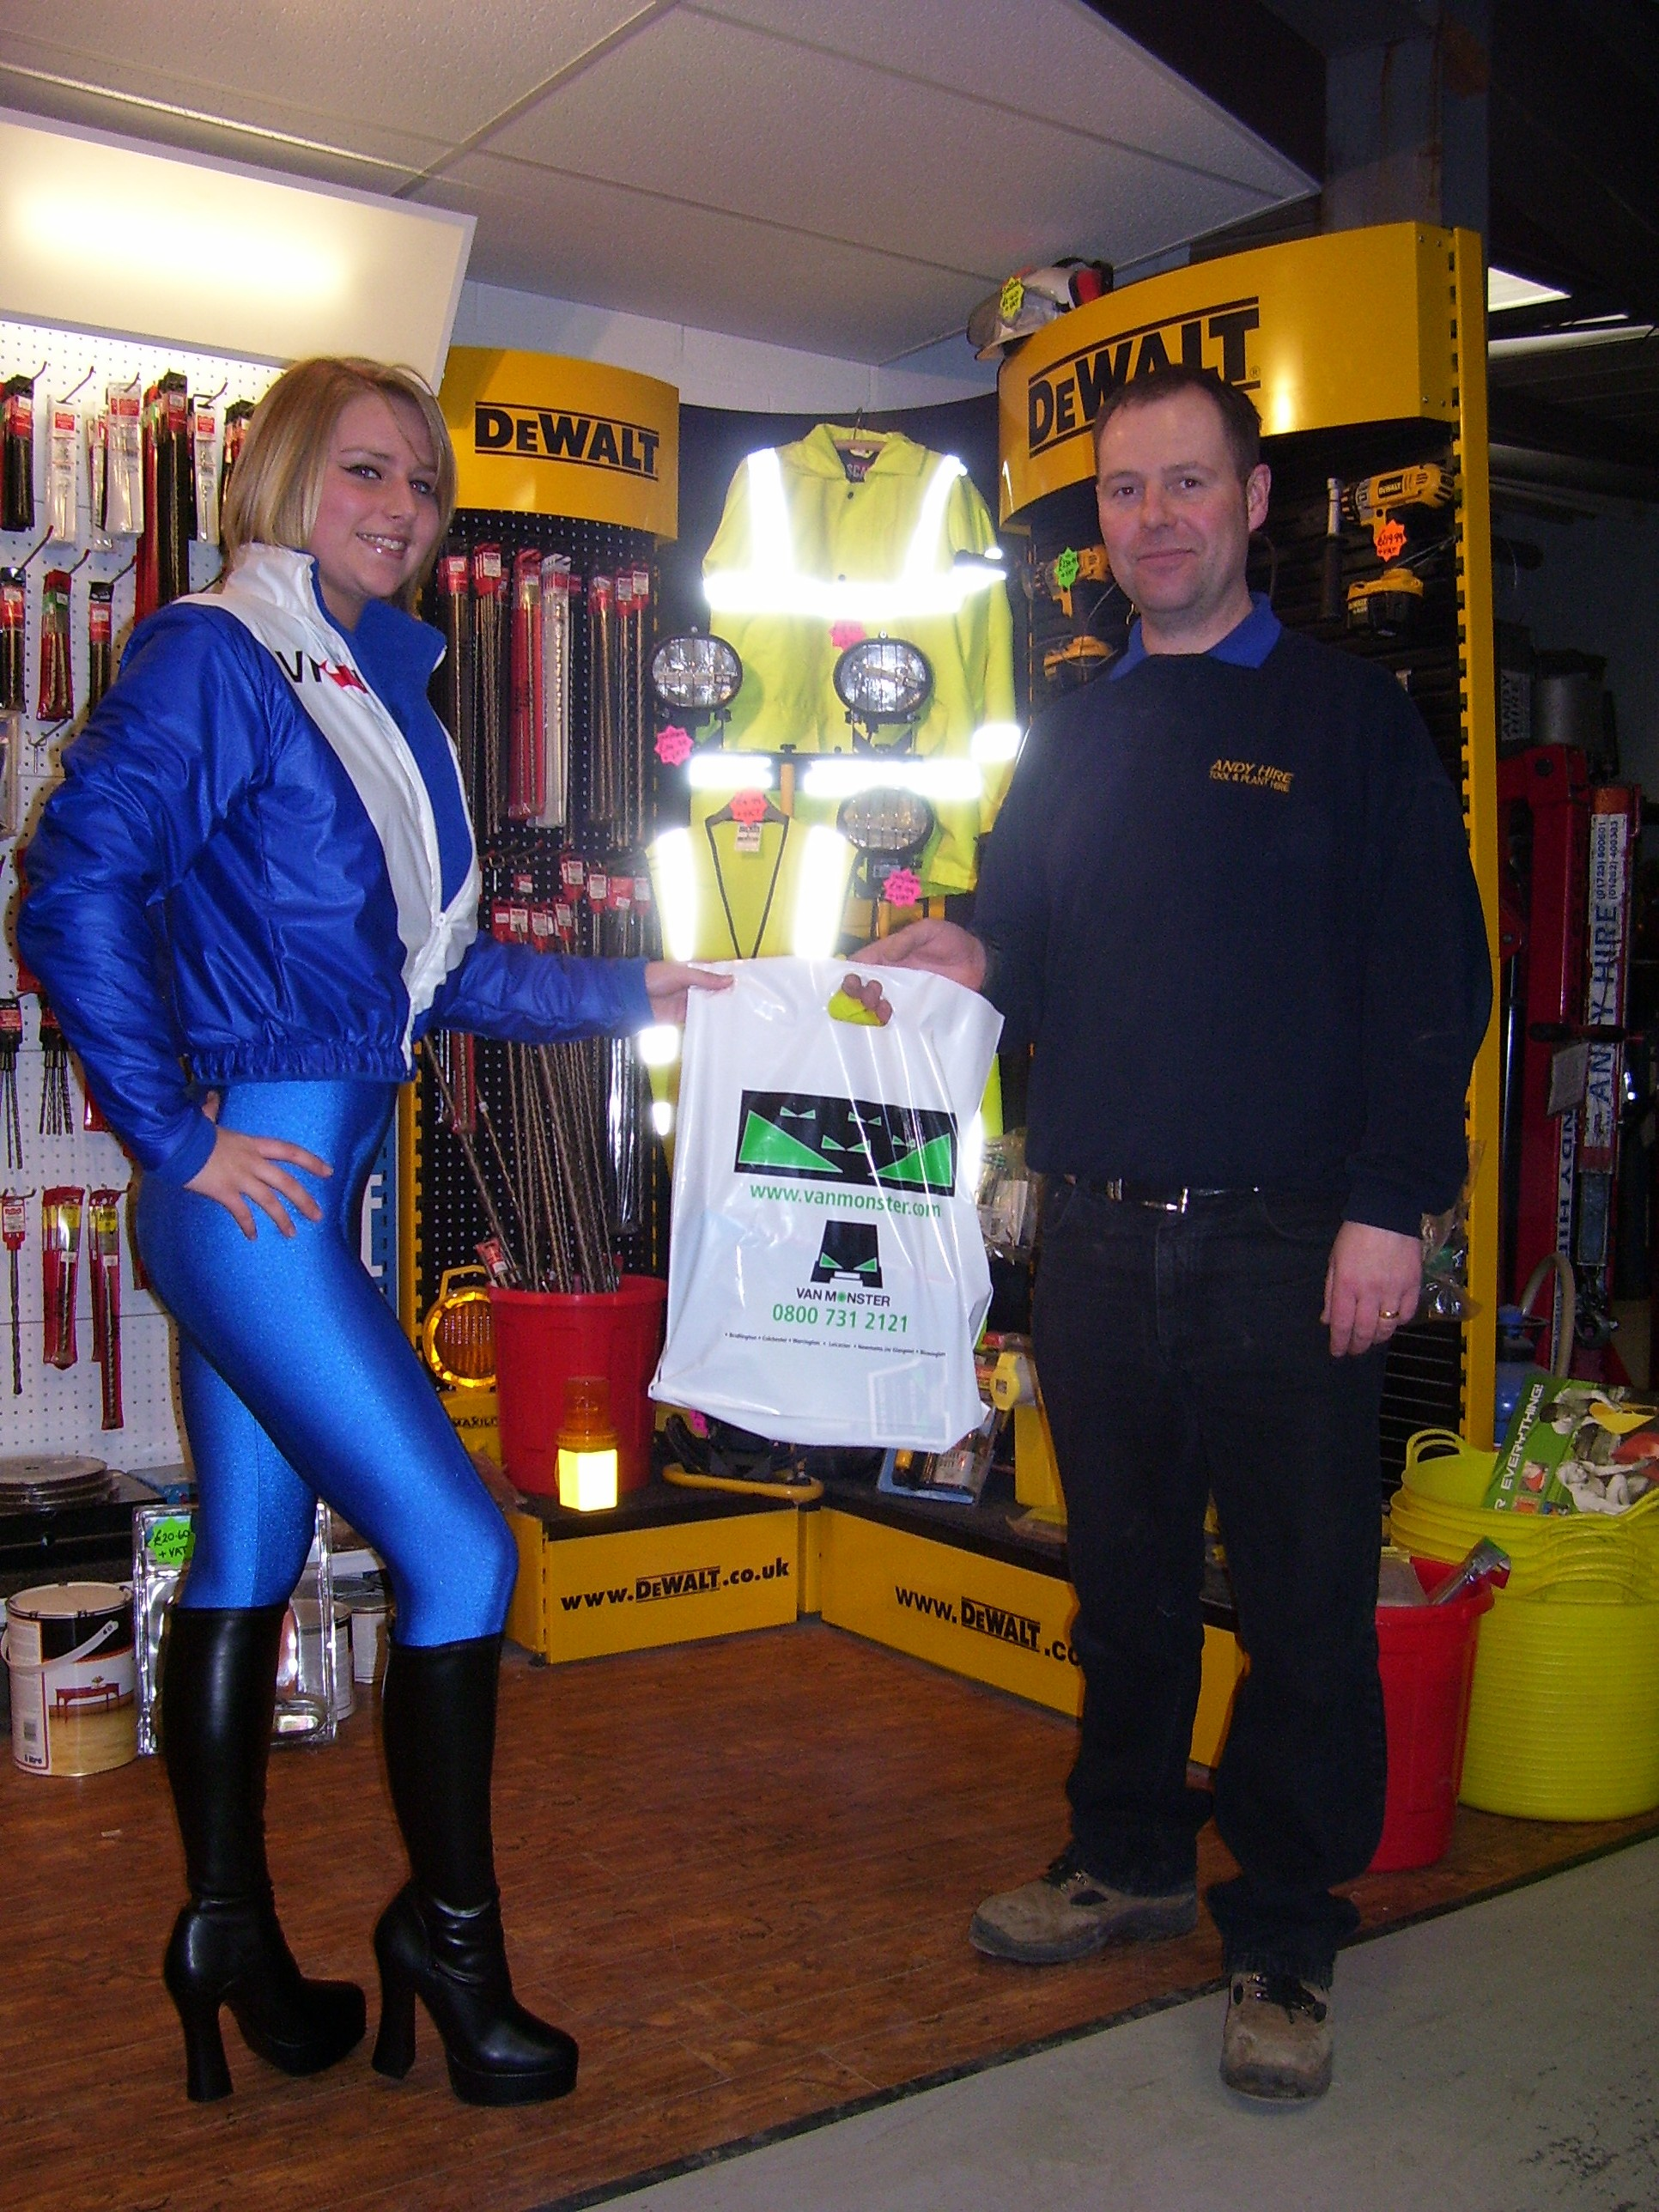 milly with andy hire with van monster goodie bag vf racing. Black Bedroom Furniture Sets. Home Design Ideas